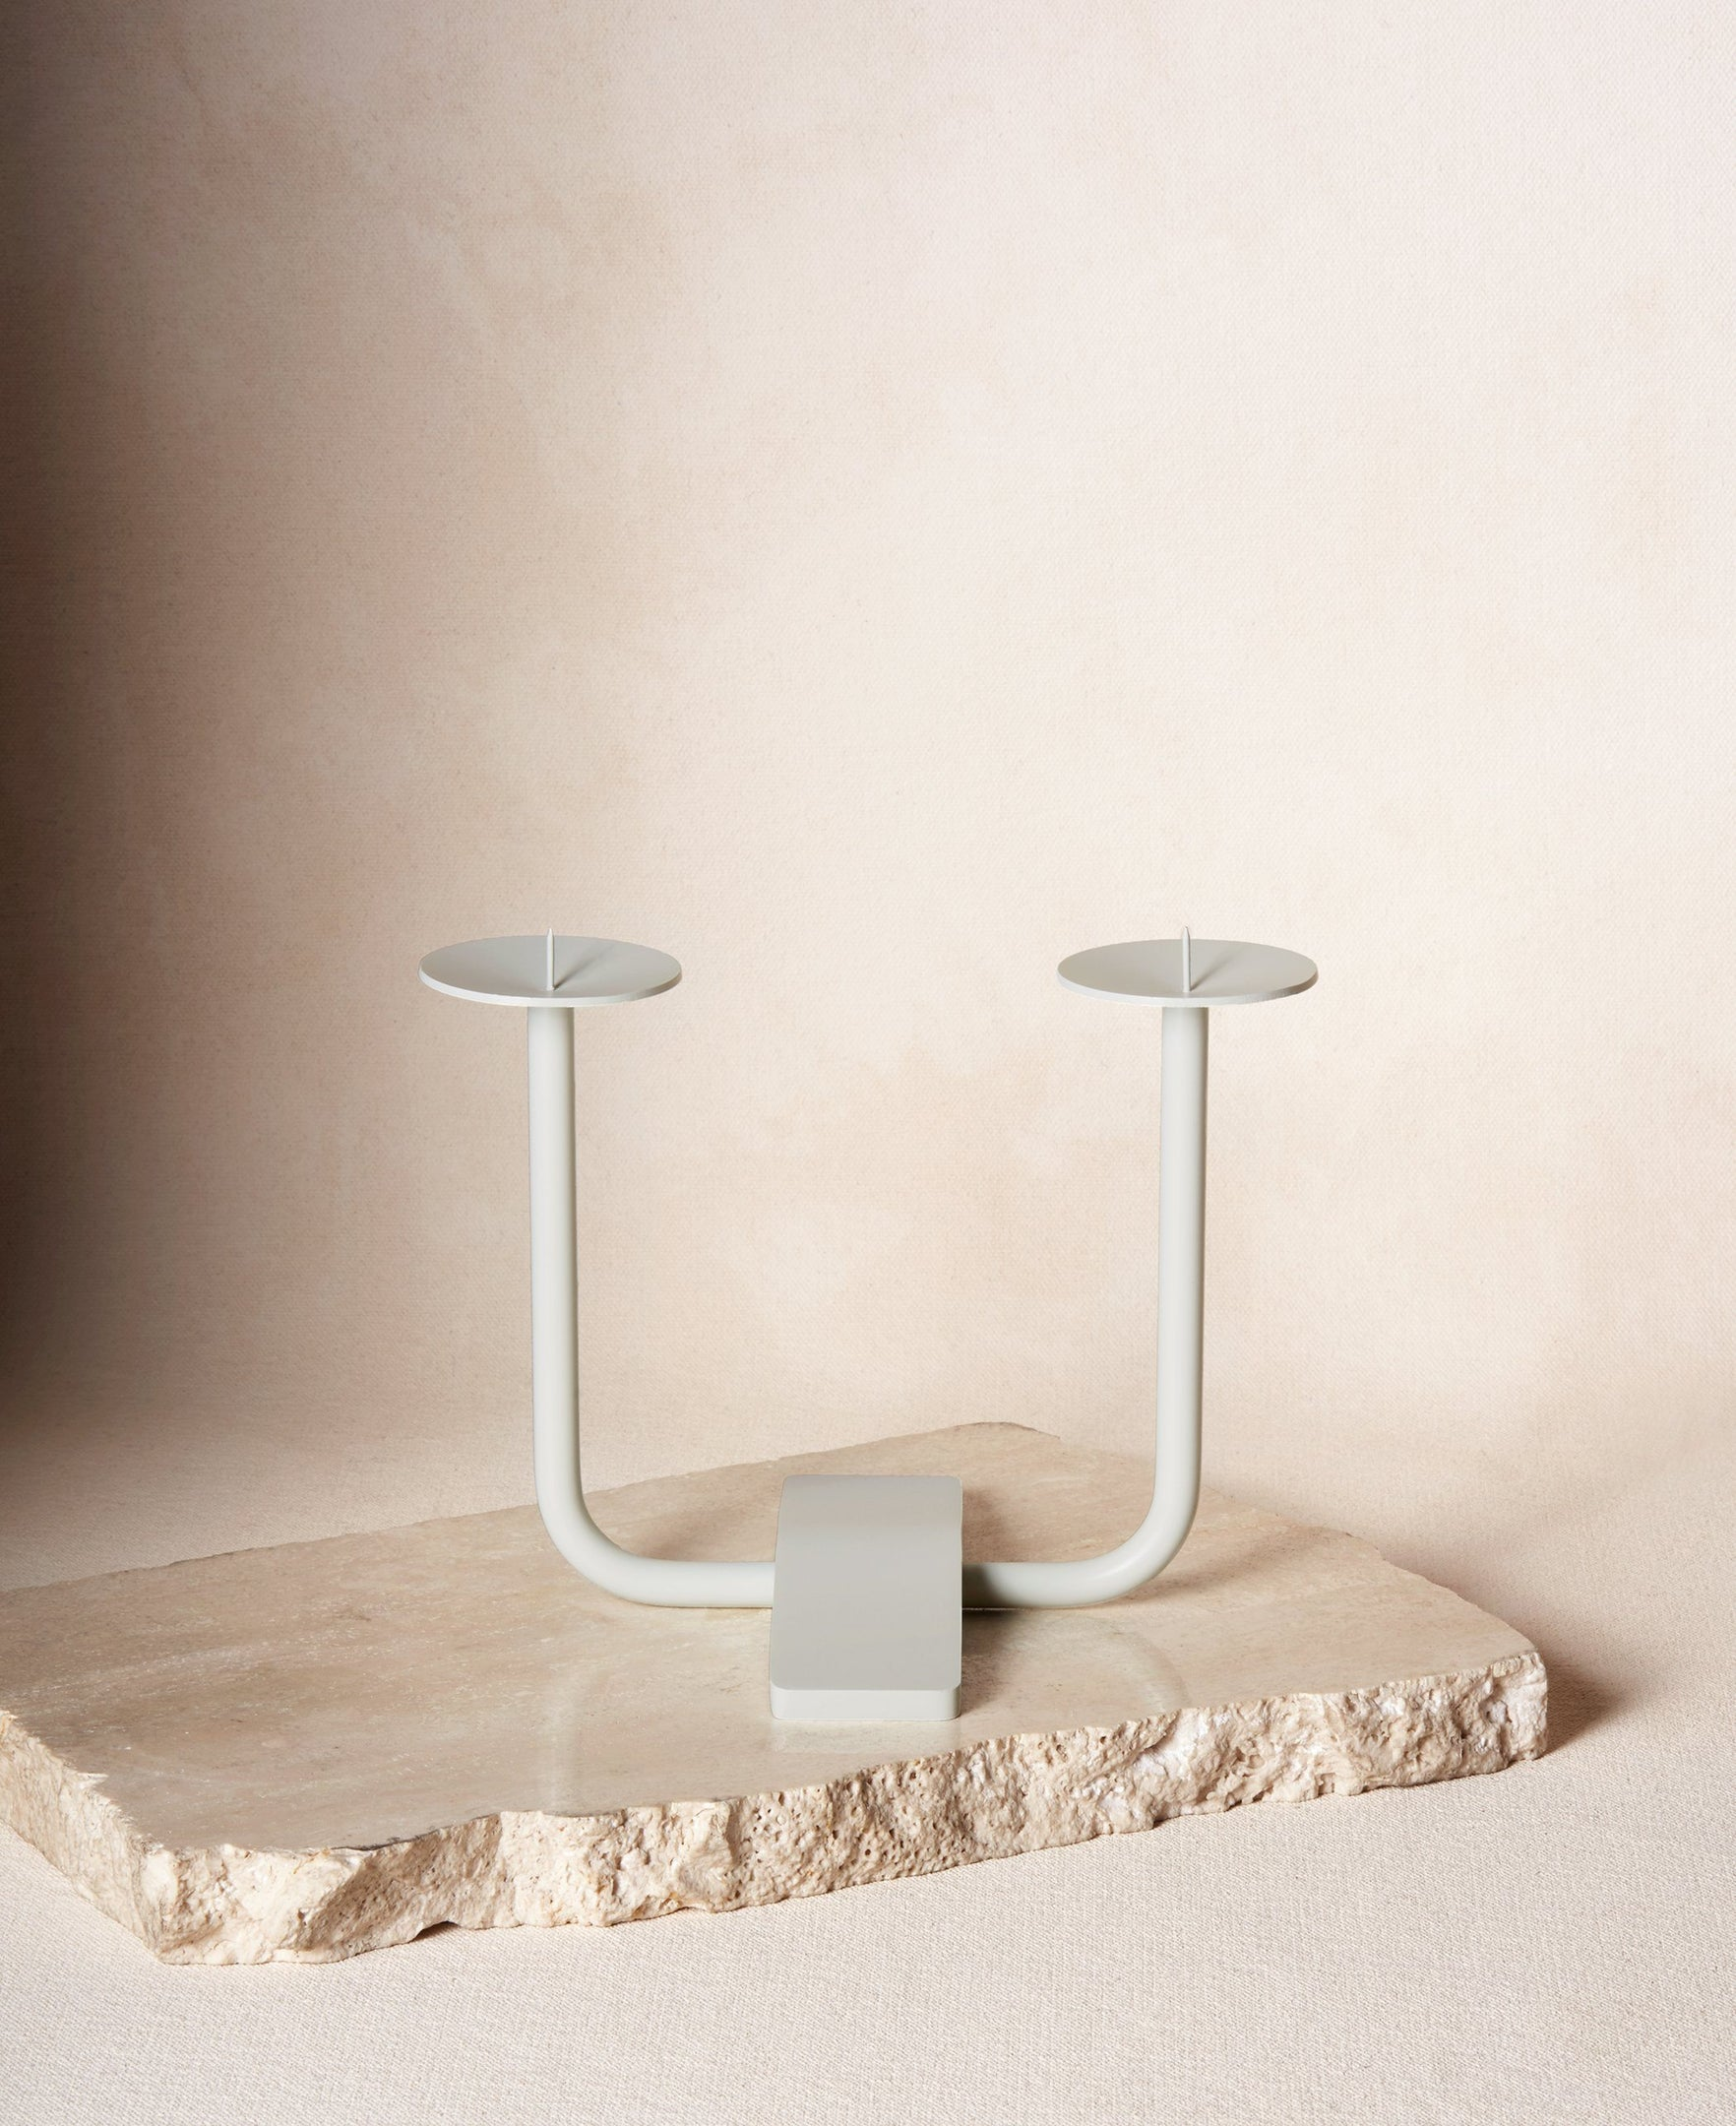 Rest Candleholder in Cloud white